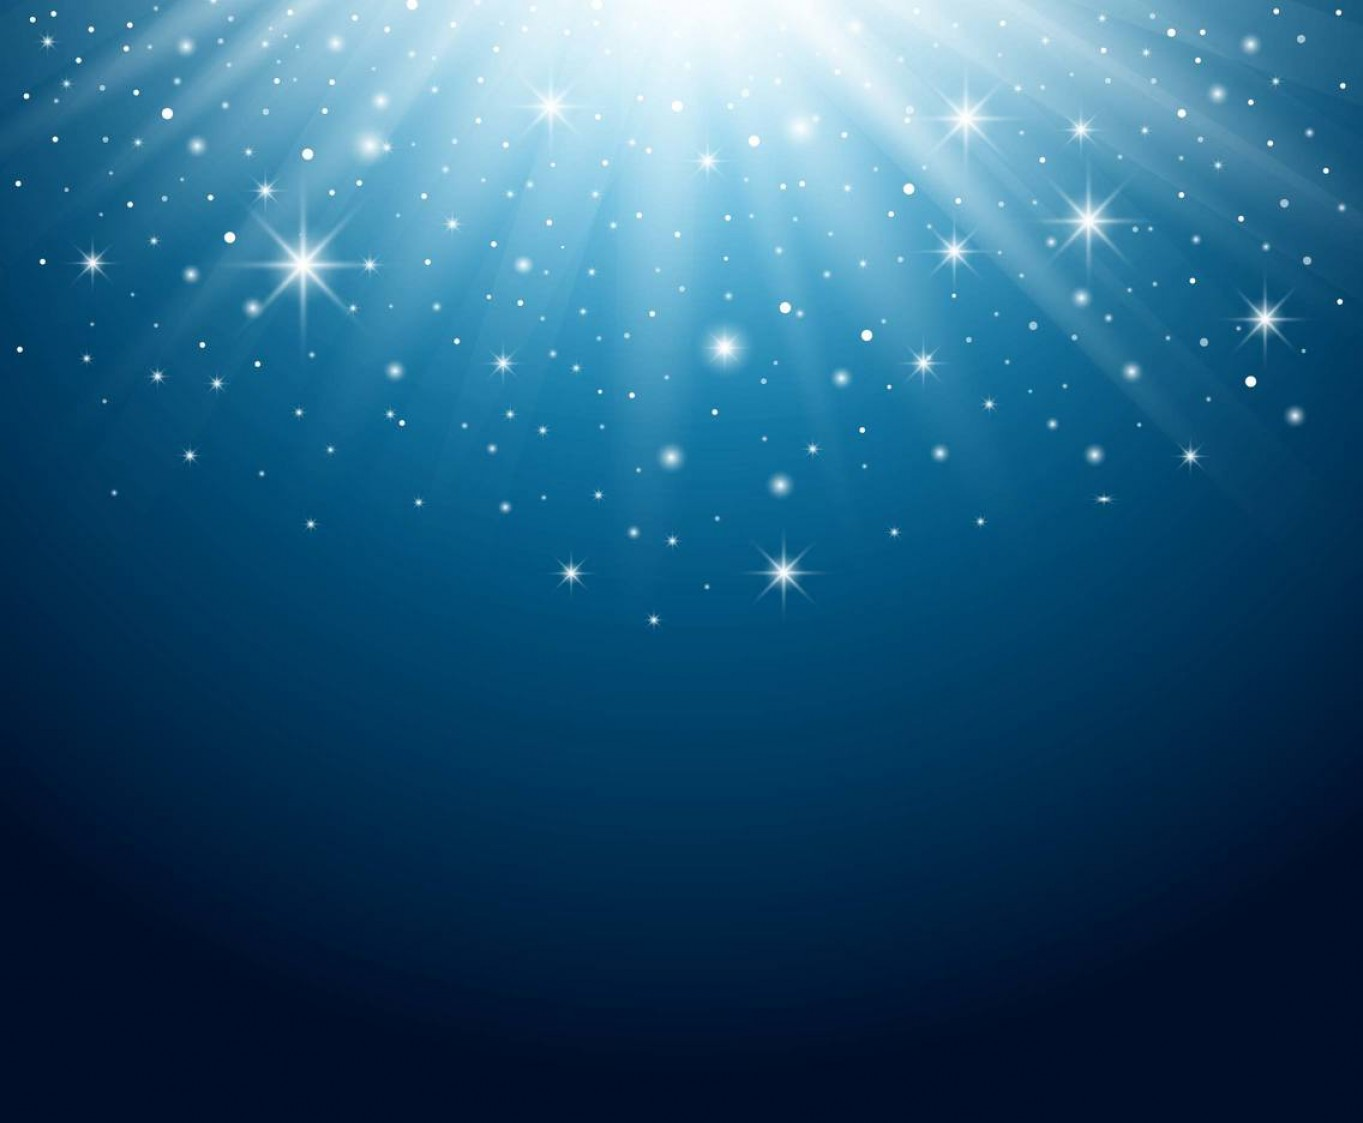 Free Vector Star: Free Star Background Vector